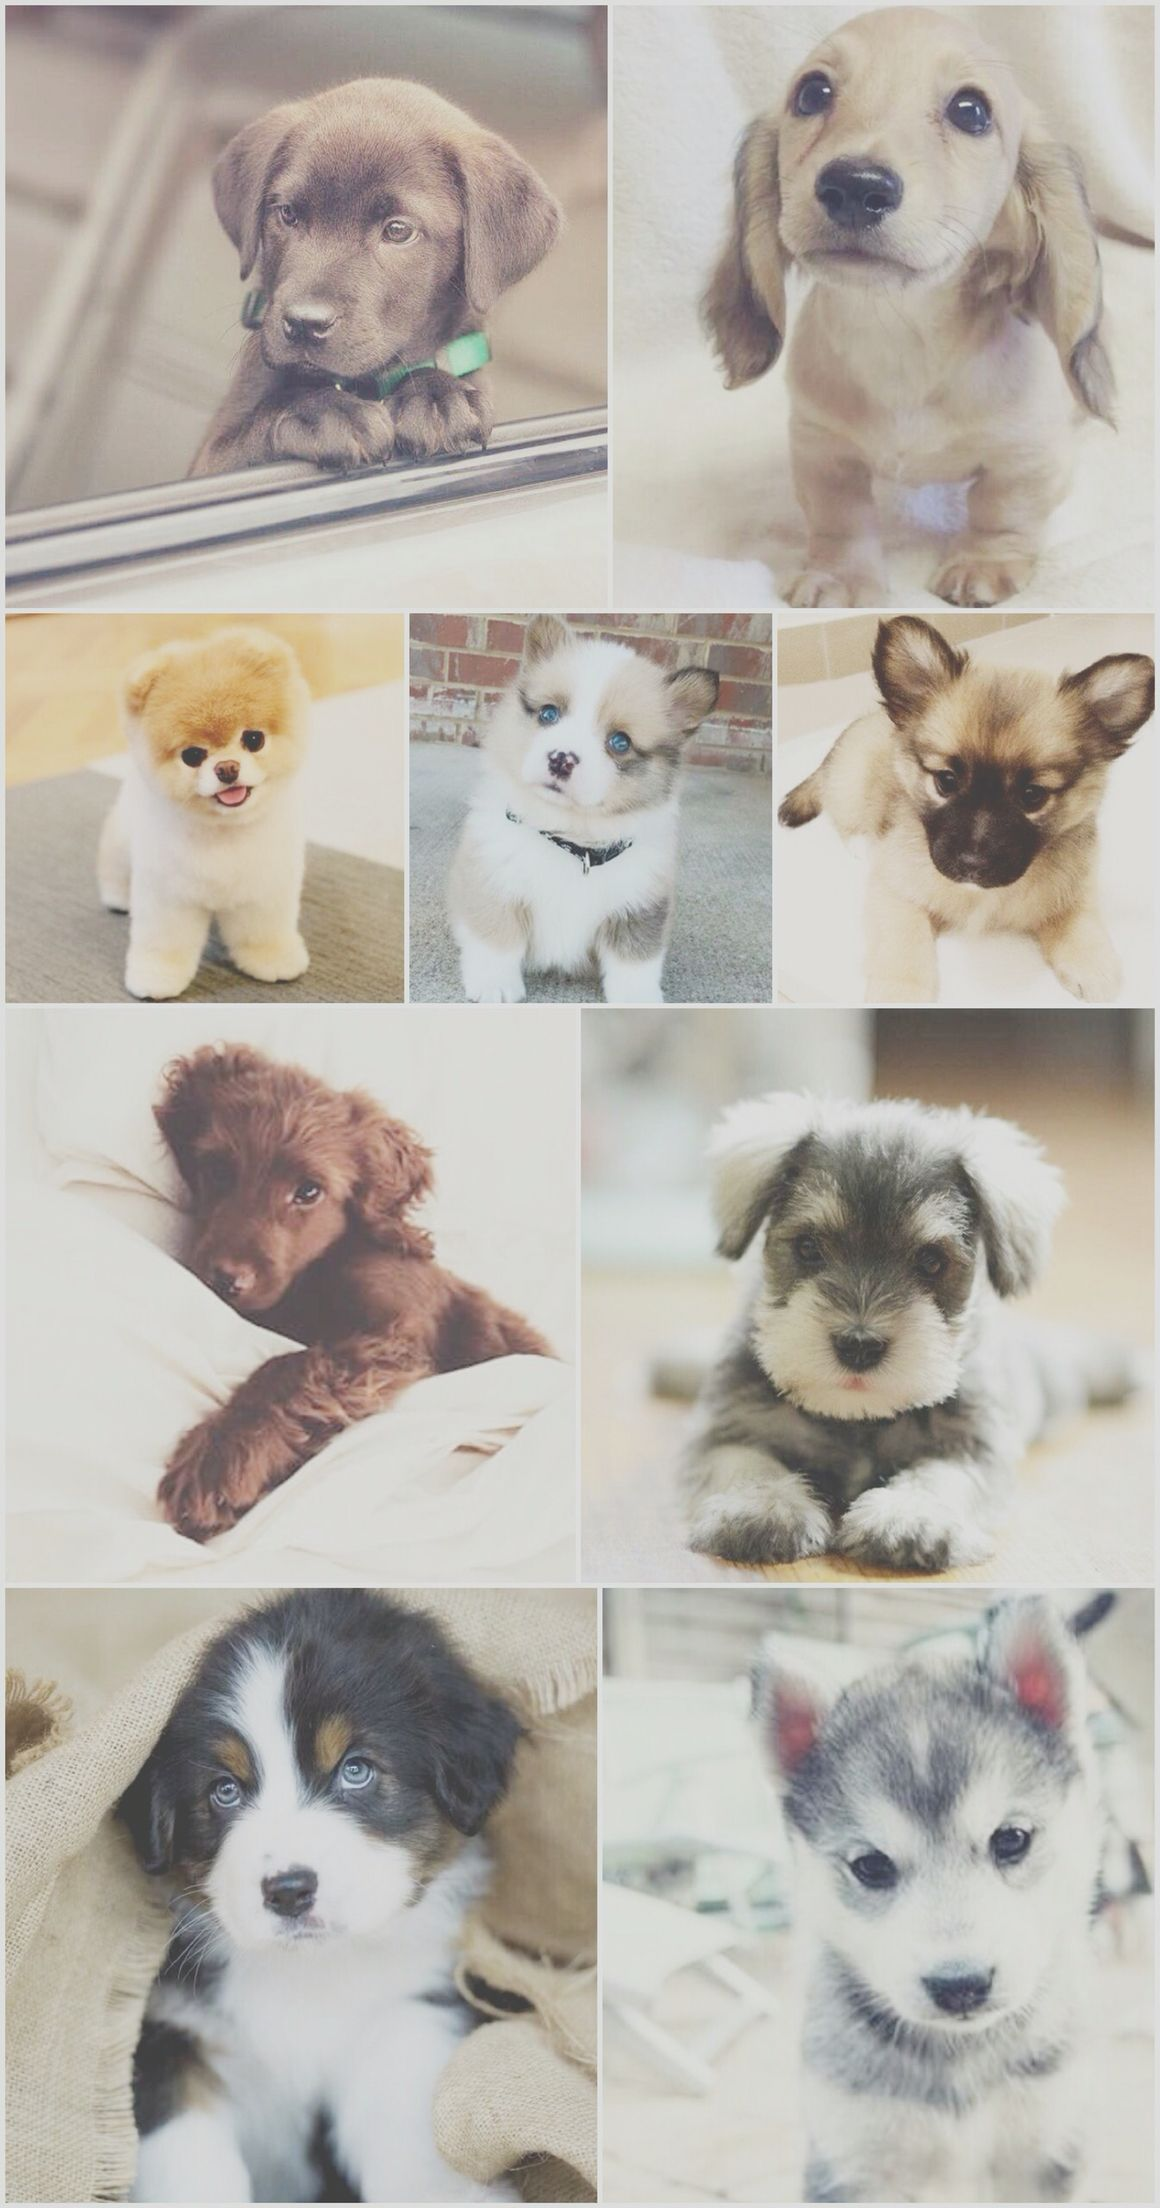 Puppy Puppies Dog Dogs Wallpaper Background Iphone Android Cute Dog Wallpaper Puppy Wallpaper Dog Wallpaper Iphone